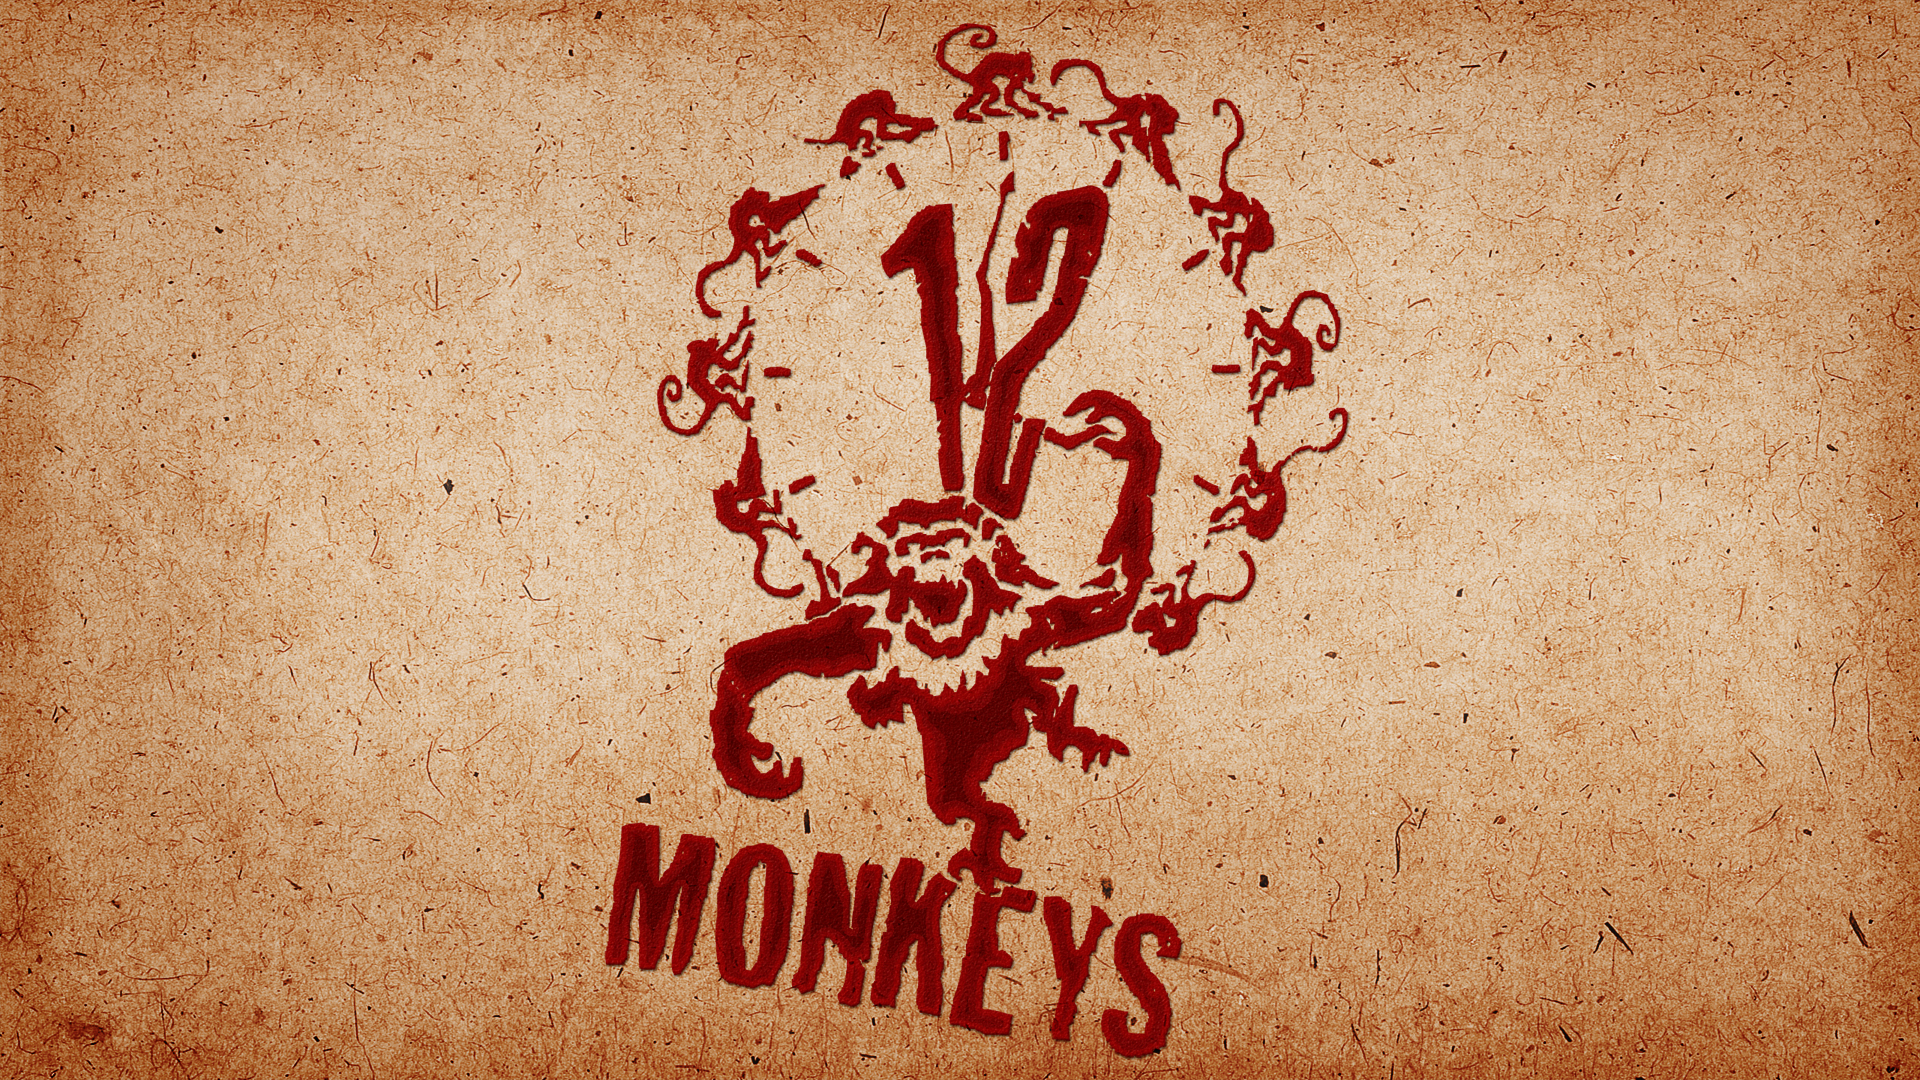 Post-Apocalypse Stories images 12 Monkeys Wallpaper HD ...